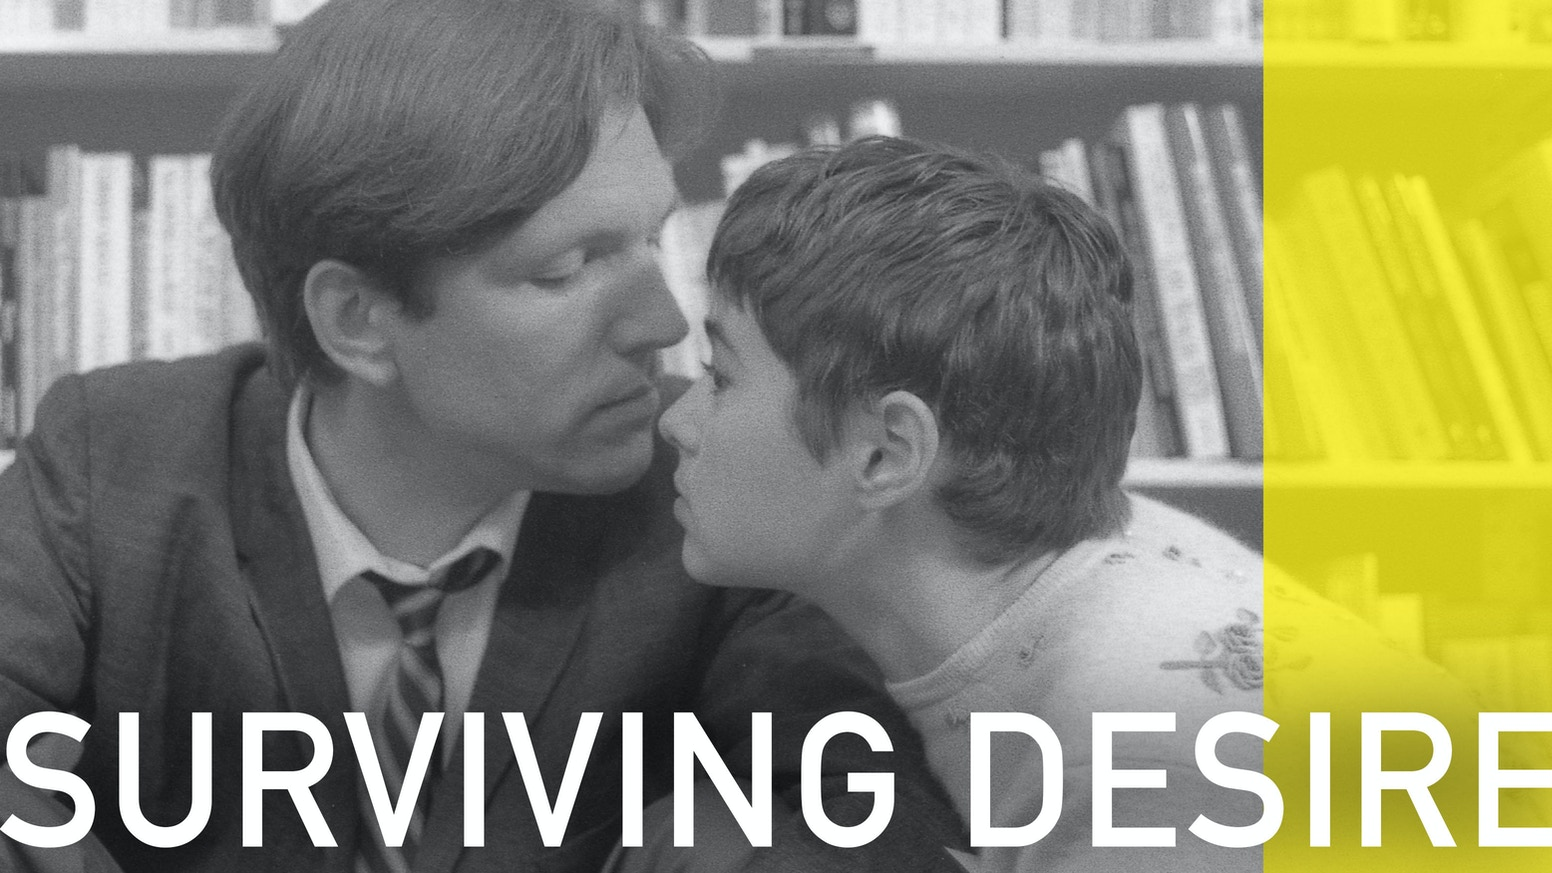 A two-disc Blu-Ray or DVD boxed-set of my film, SURVIVING DESIRE, and other short subjects newly restored in HD.